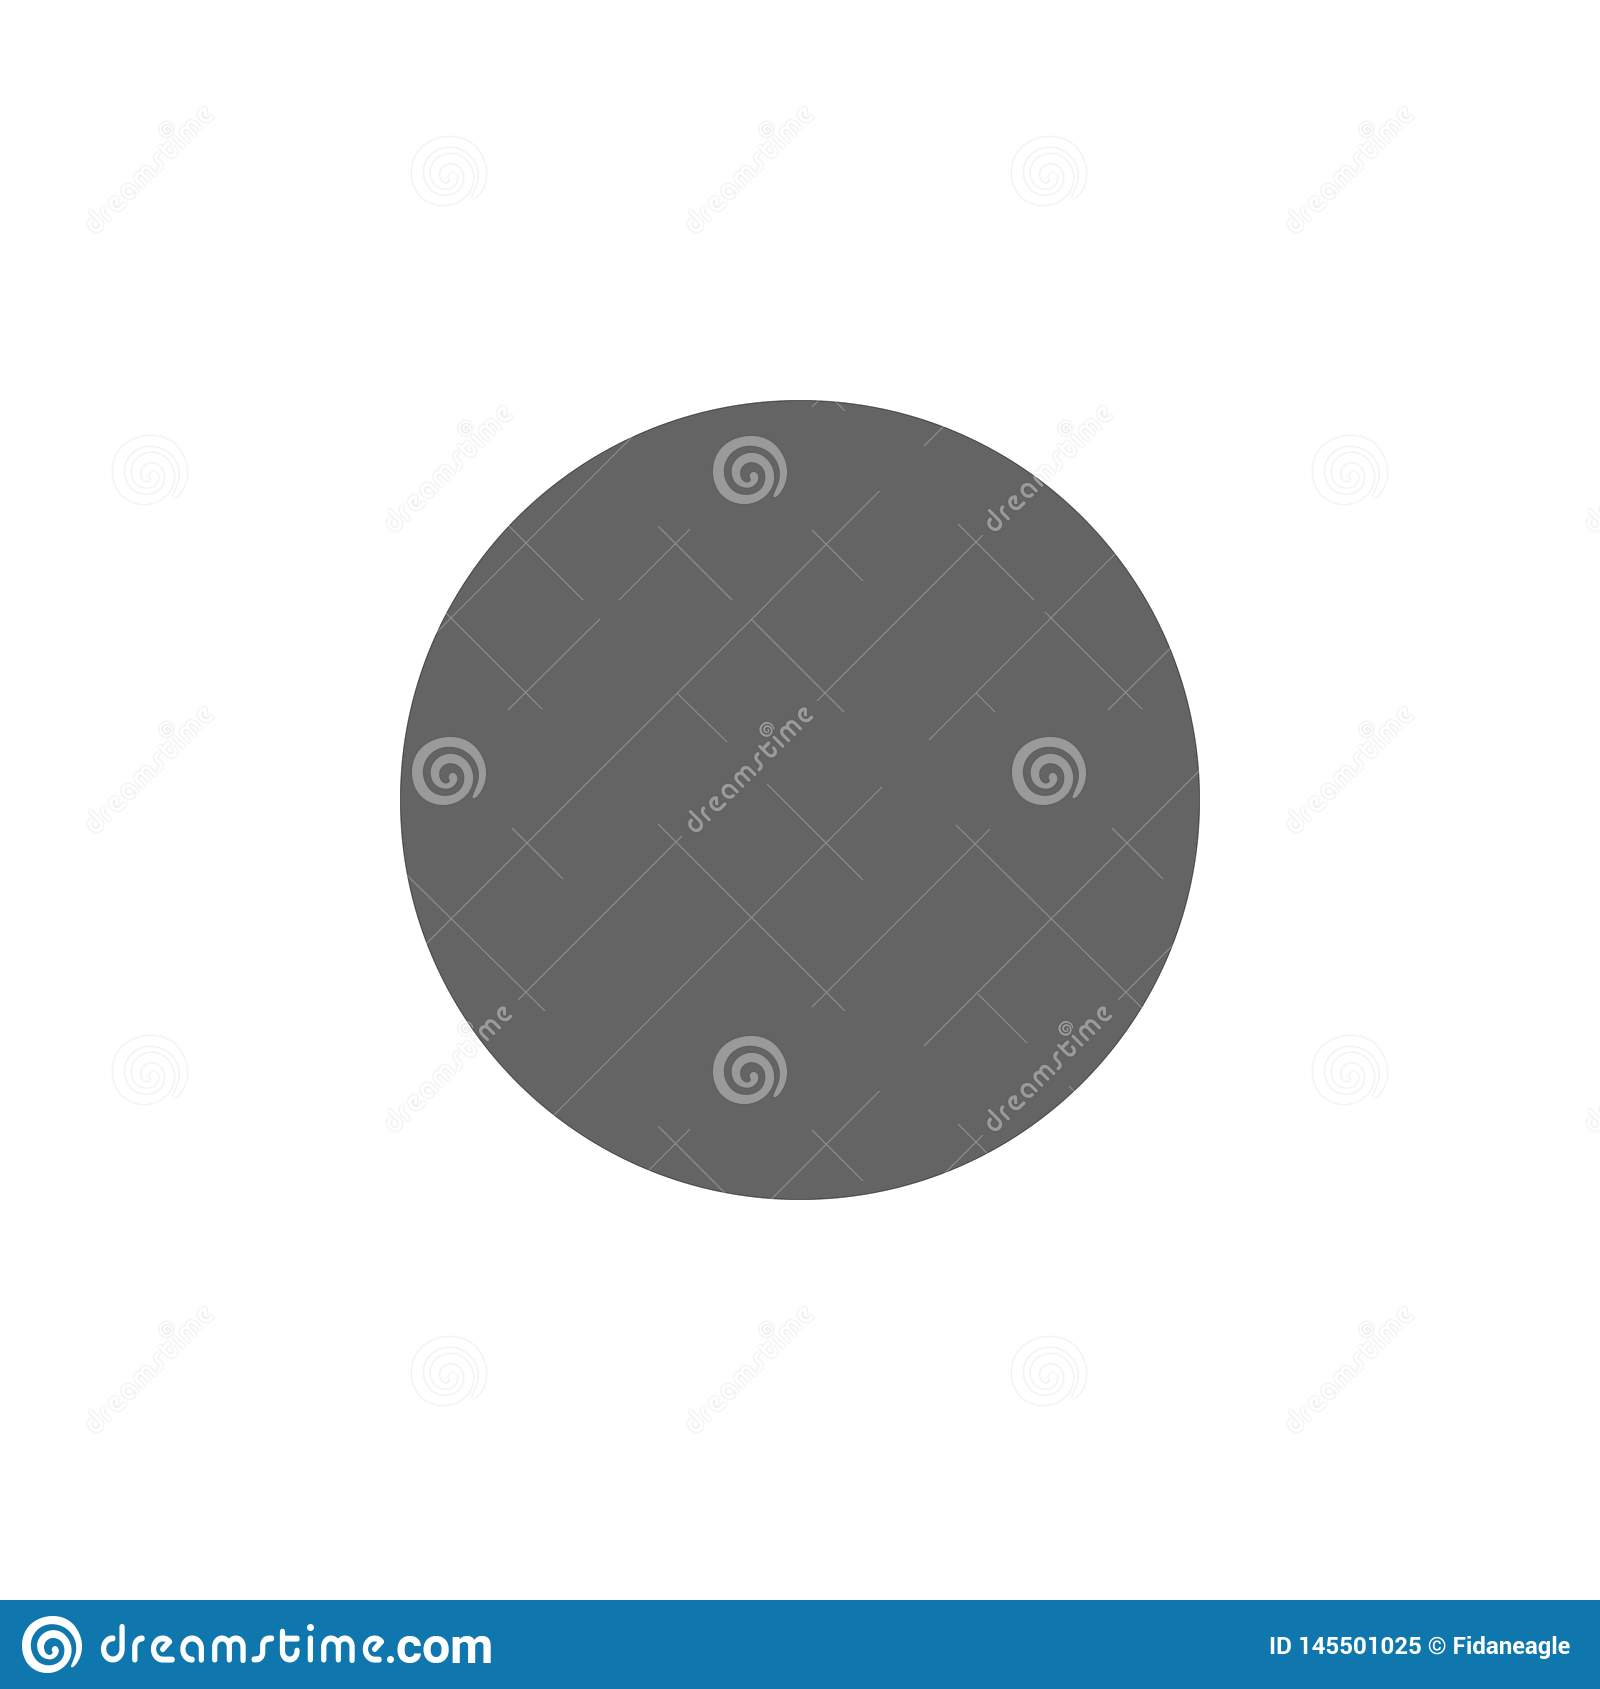 Geometric figures, circle icon. Elements of geometric figures illustration icon. Signs and symbols can be used for web, logo,